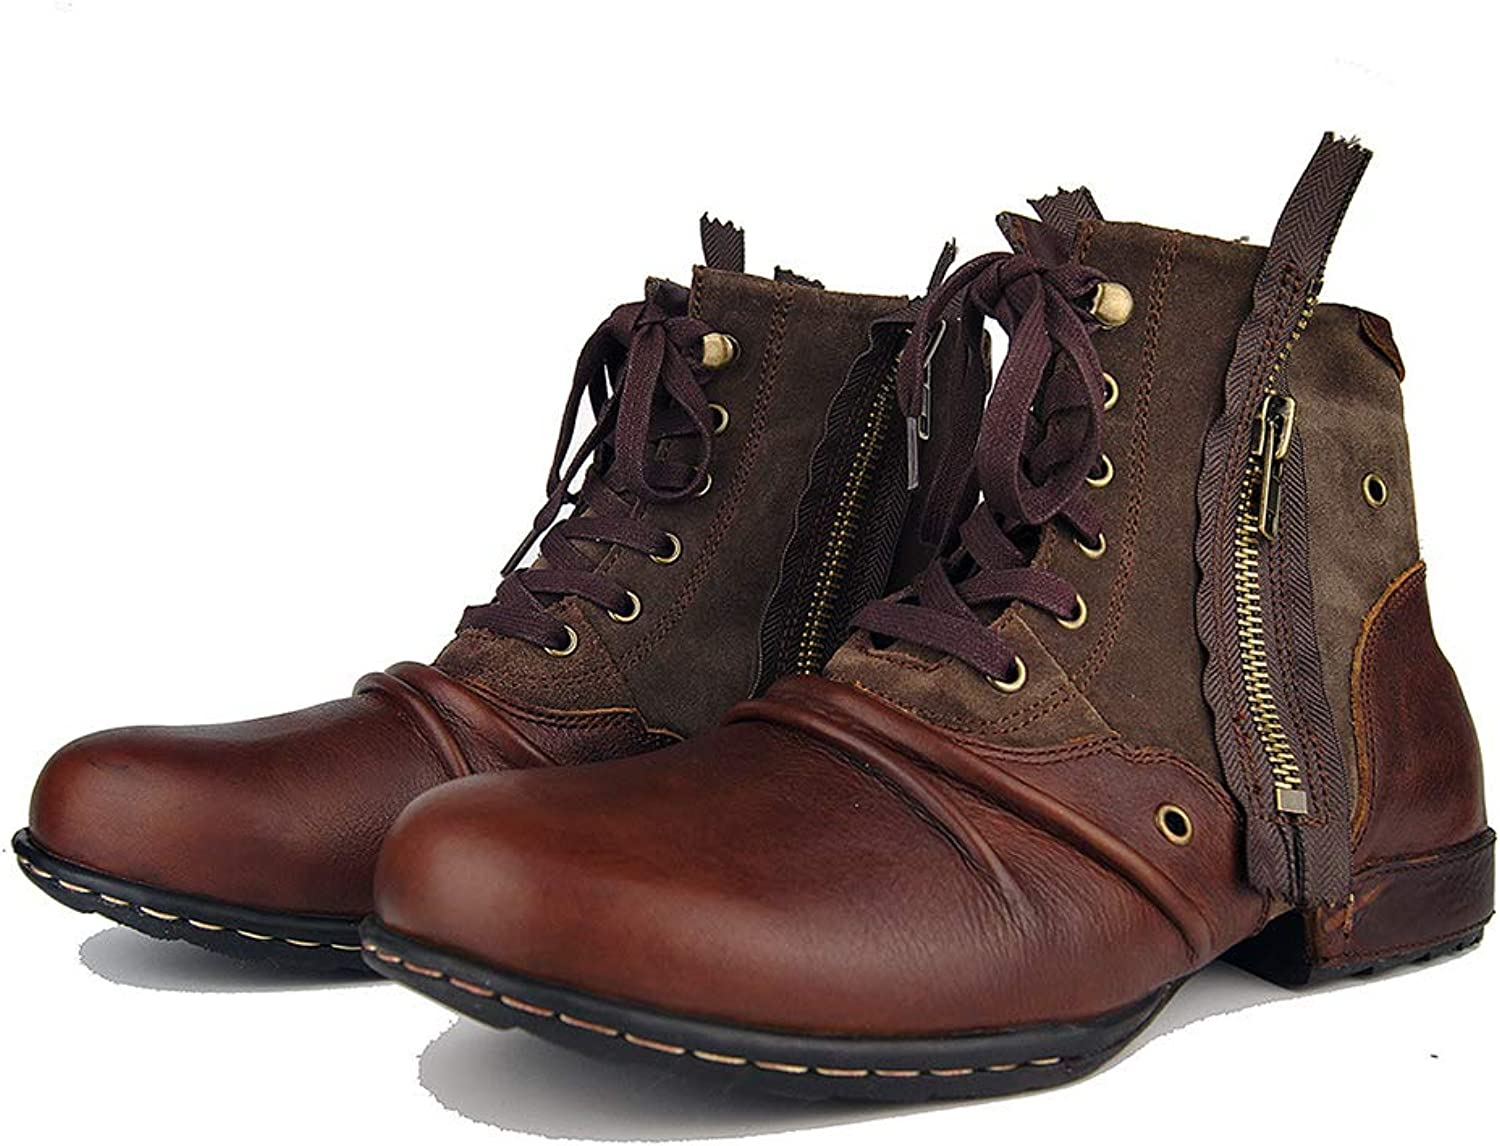 Vintage Spring Men's shoes Punk Rock Boots Motorcycle Boots Boots Zipper Large Size Martin Boots Casual Outdoor Cowboy Boots